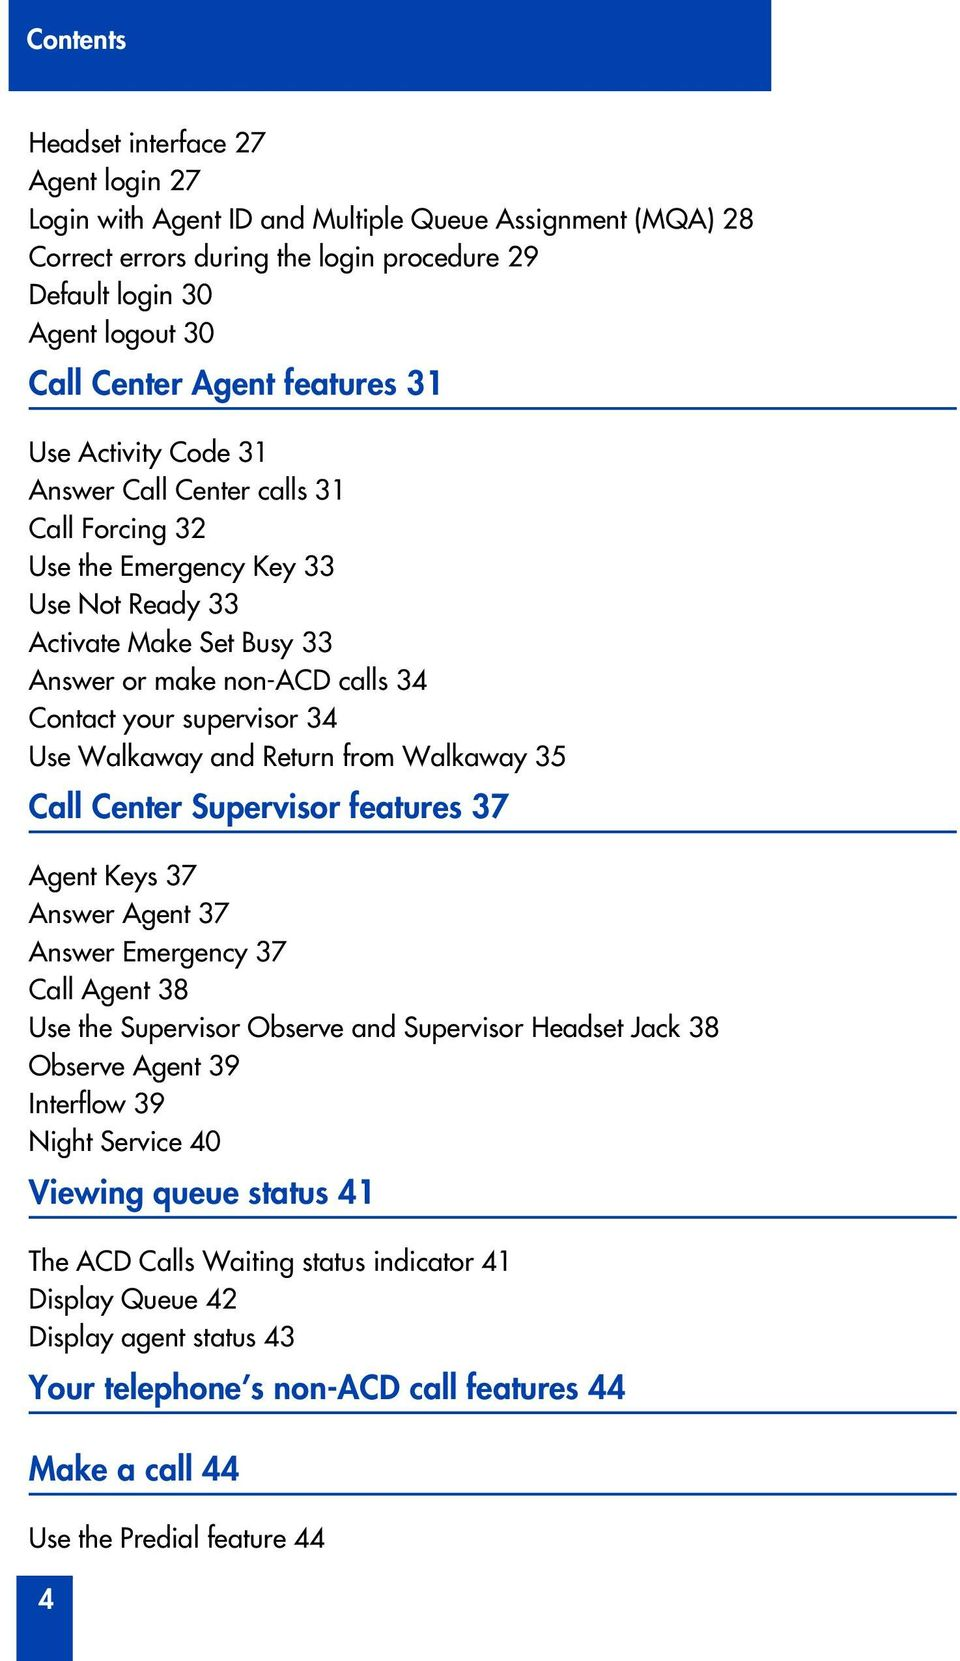 Use Walkaway and Return from Walkaway 35 Call Center Supervis features 37 Agent Keys 37 Answer Agent 37 Answer Emergency 37 Call Agent 38 Use the Supervis Observe and Supervis Headset Jack 38 Observe